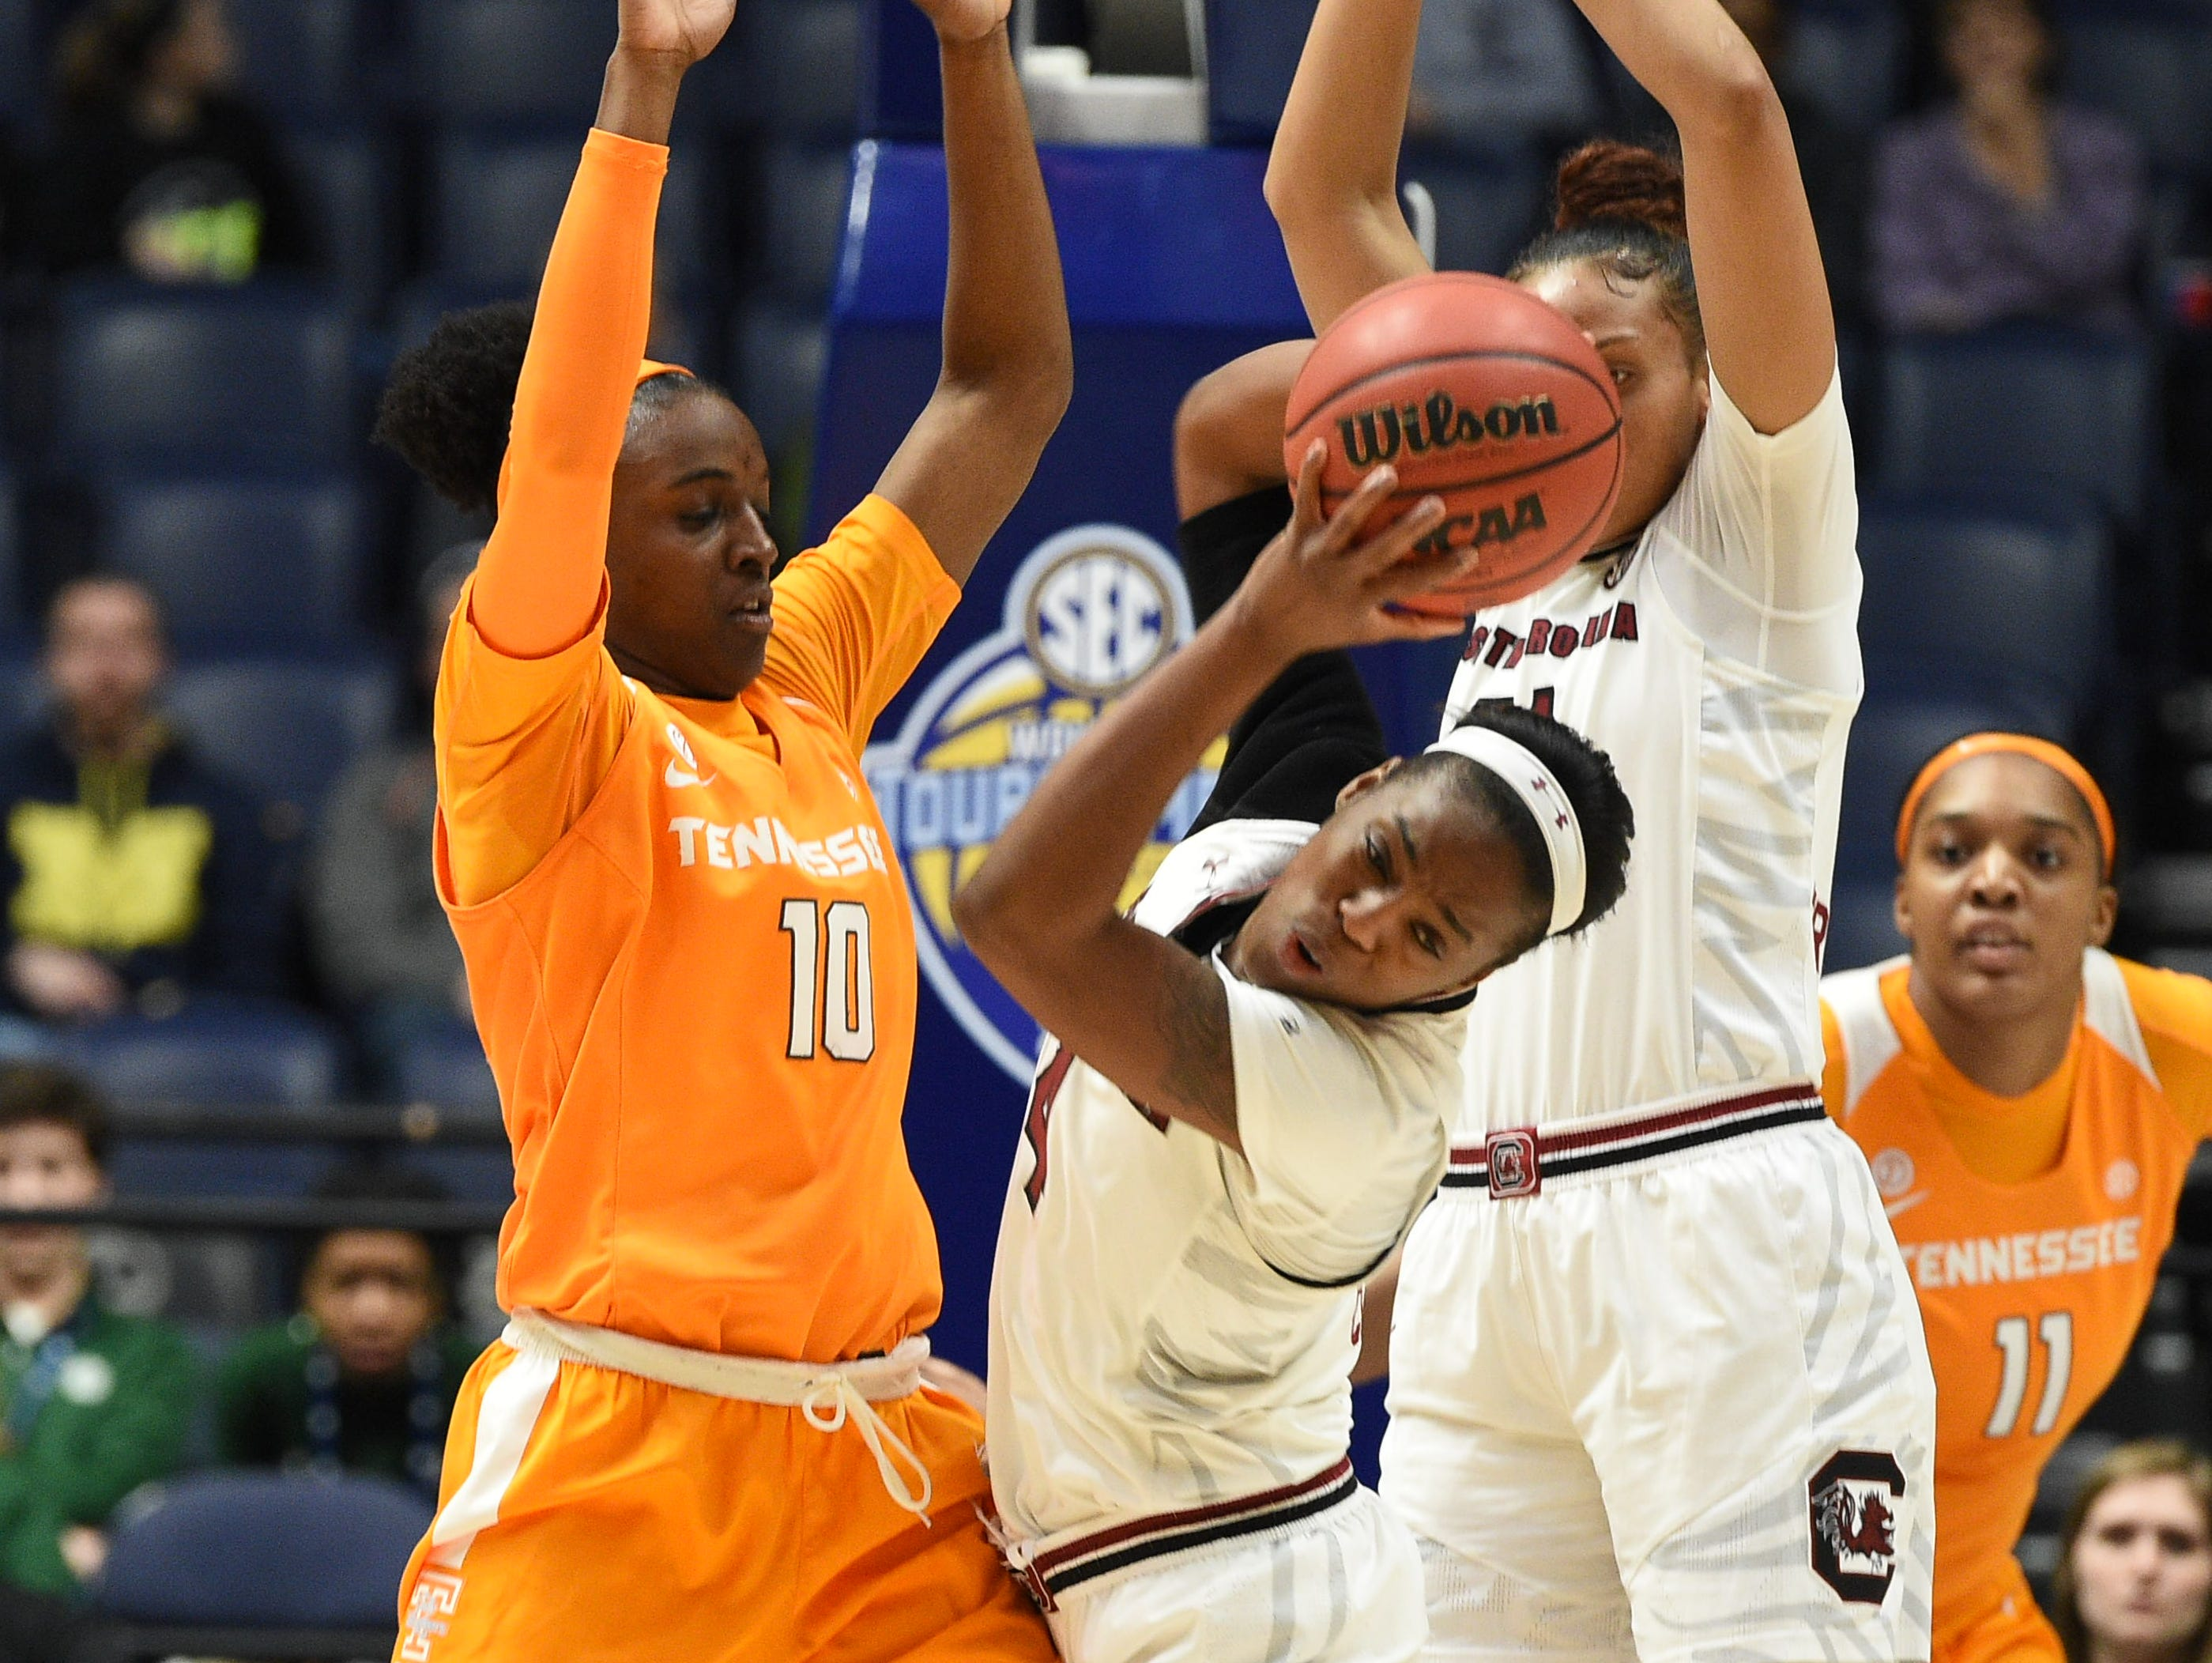 Tennessee Lady Volunteers guard Meme Jackson (10) stops South Carolina Gamecocks guard Doniyah Cliney (4) during the quarterfinals at the 2018 SEC WomenÕs Basketball Tournament at Bridgestone Arena in Nashville on Thursday, March 2, 2018.